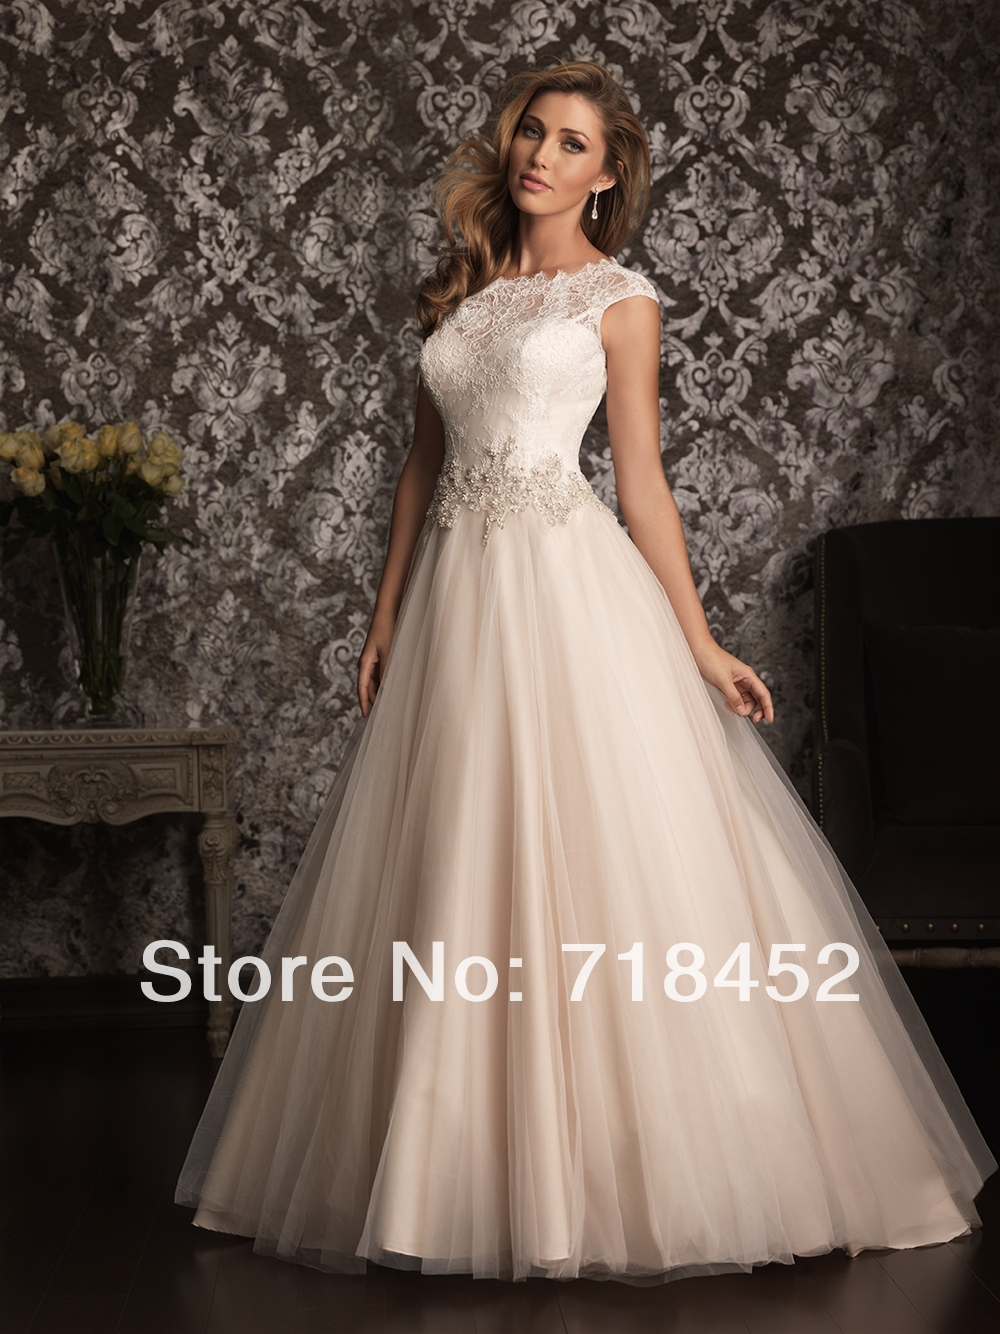 Buy 2014 New 50s Style Wedding Dresses High Neck Bridal Gown